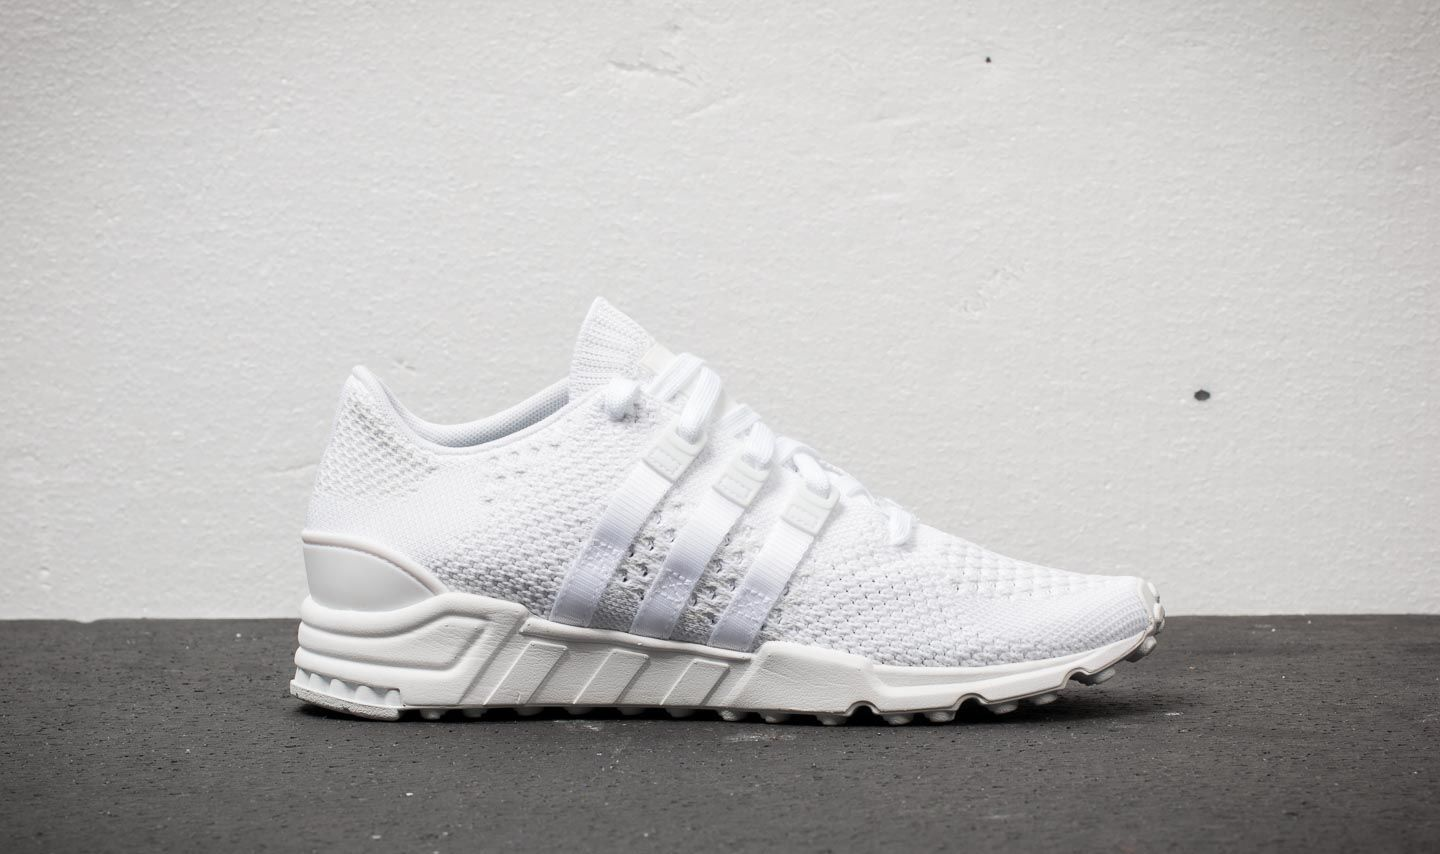 separation shoes b0f44 b9864 adidas EQT Support RF Primeknit Ftw White Ftw White Crystal White at a  great